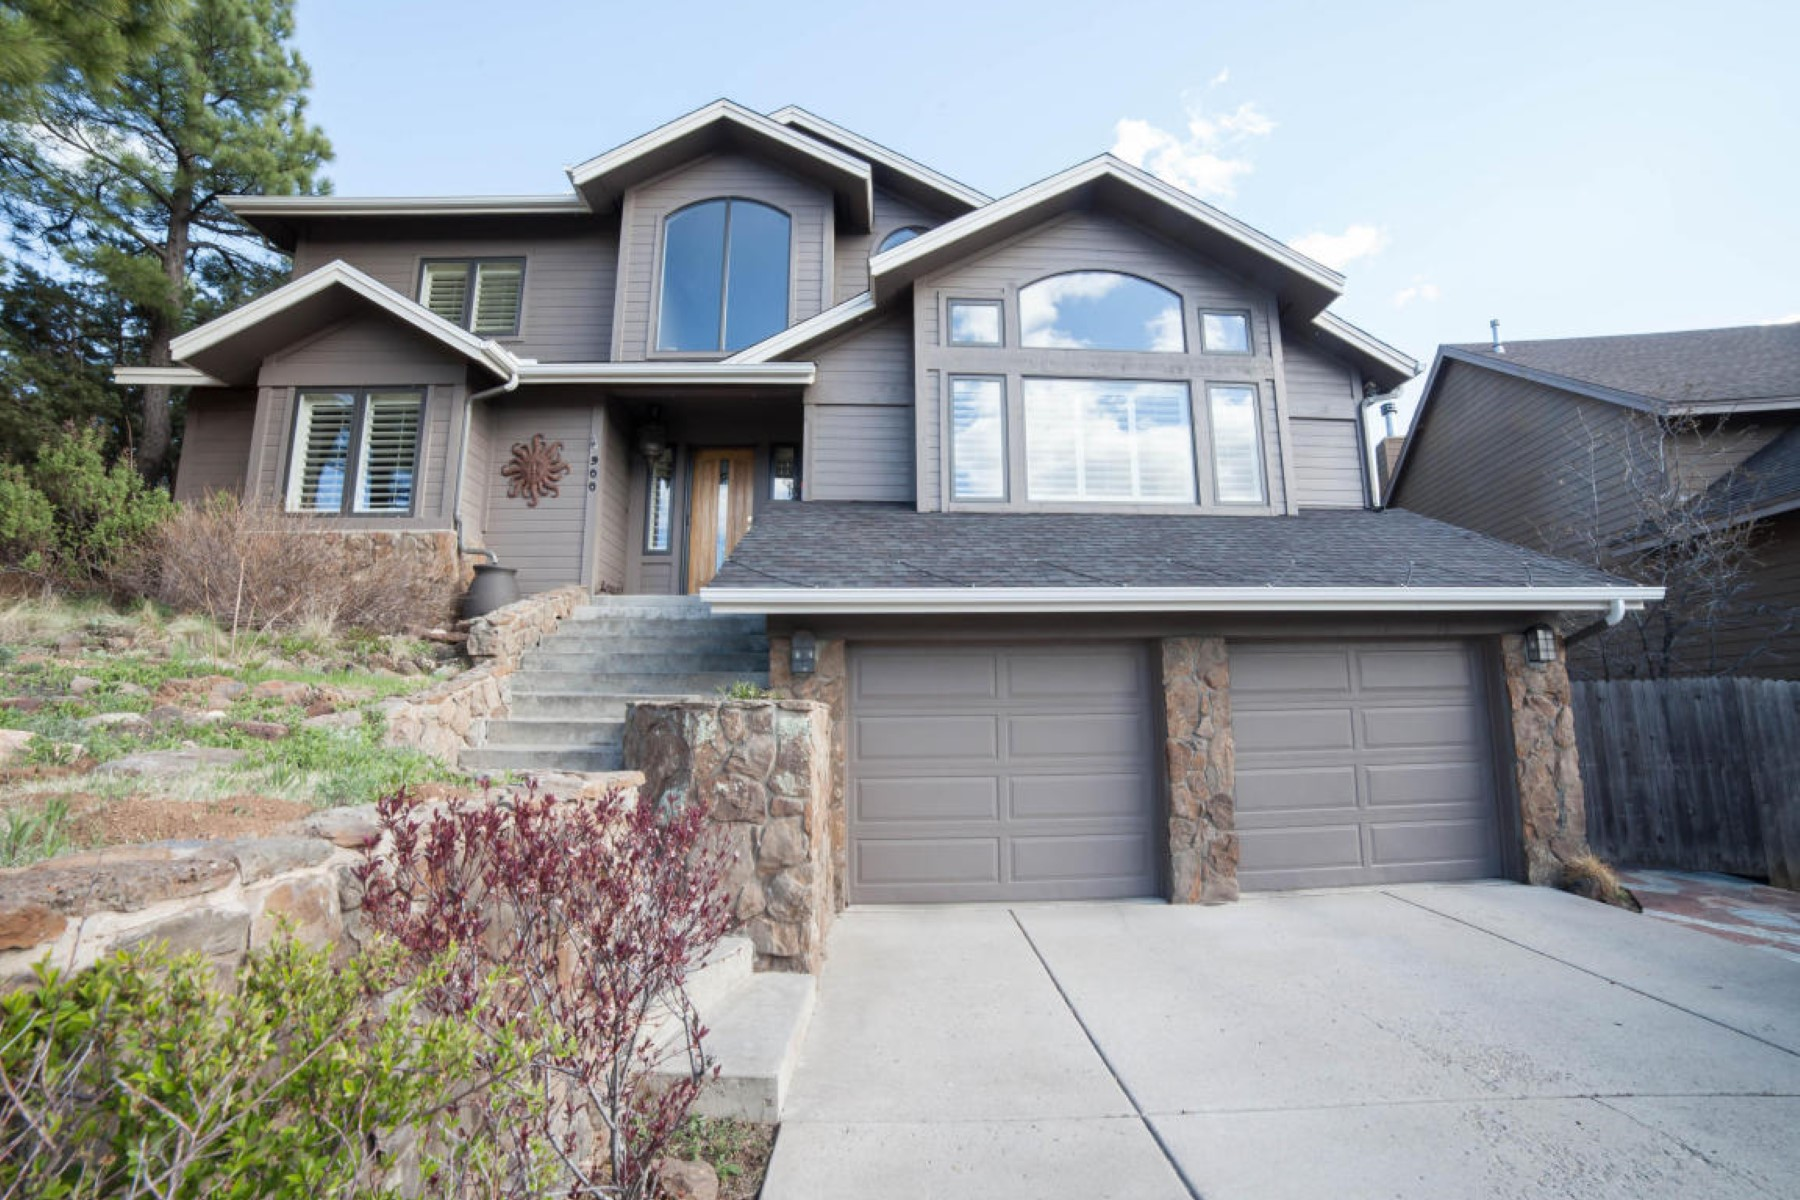 Single Family Home for Sale at Spacious well-maintained home 900 N Sinagua Heights Dr. Flagstaff, Arizona, 86004 United States